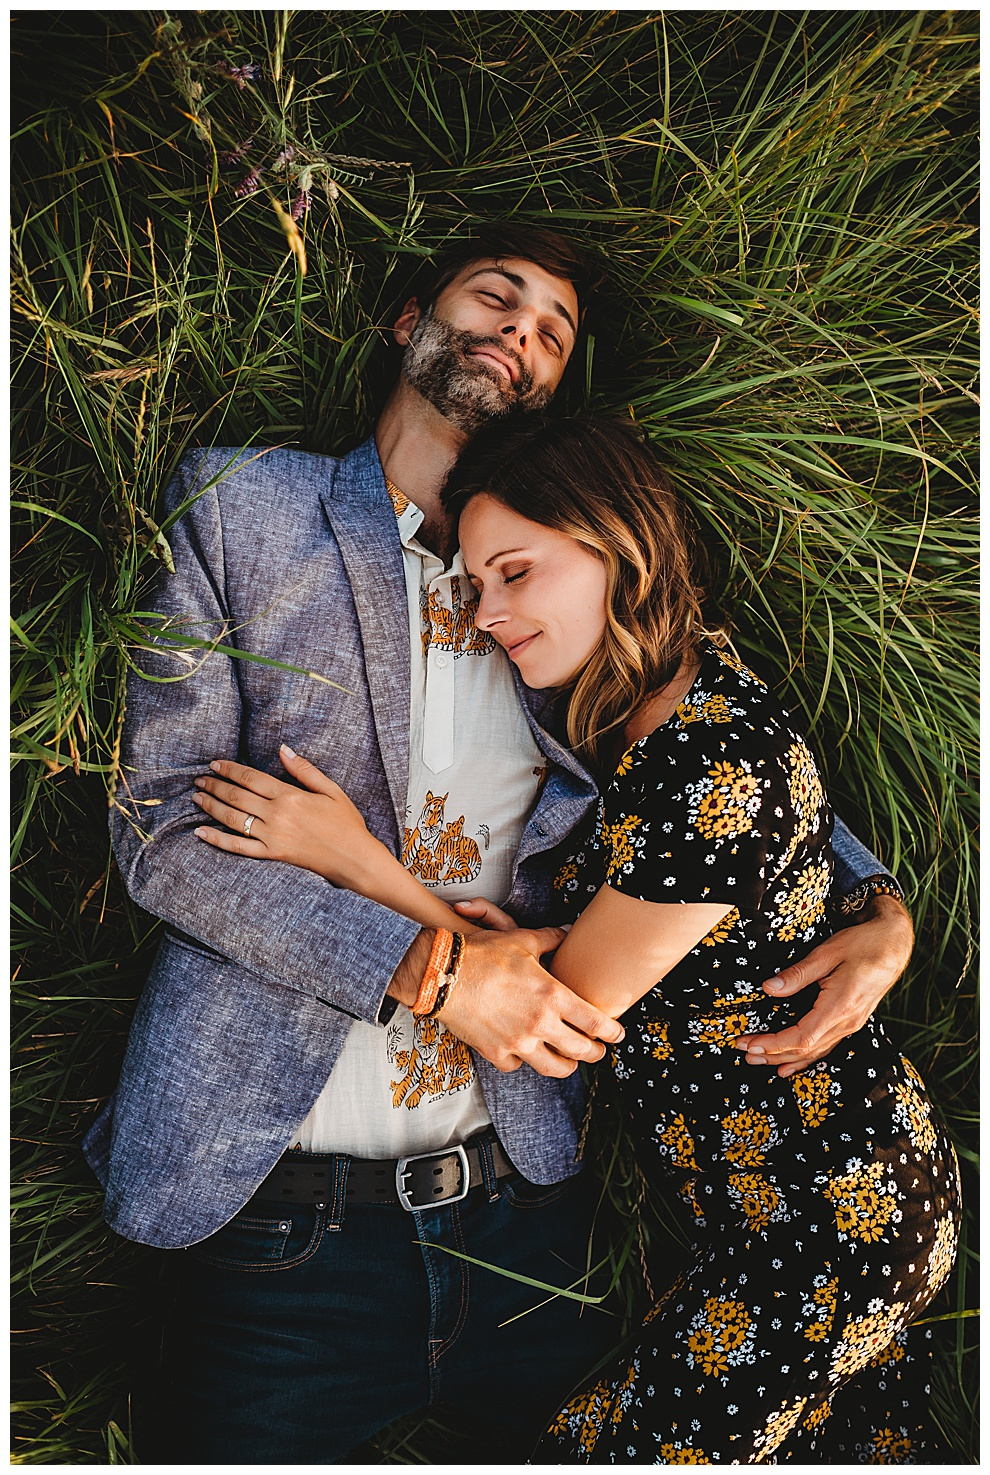 man and woman lying in tall green grass together